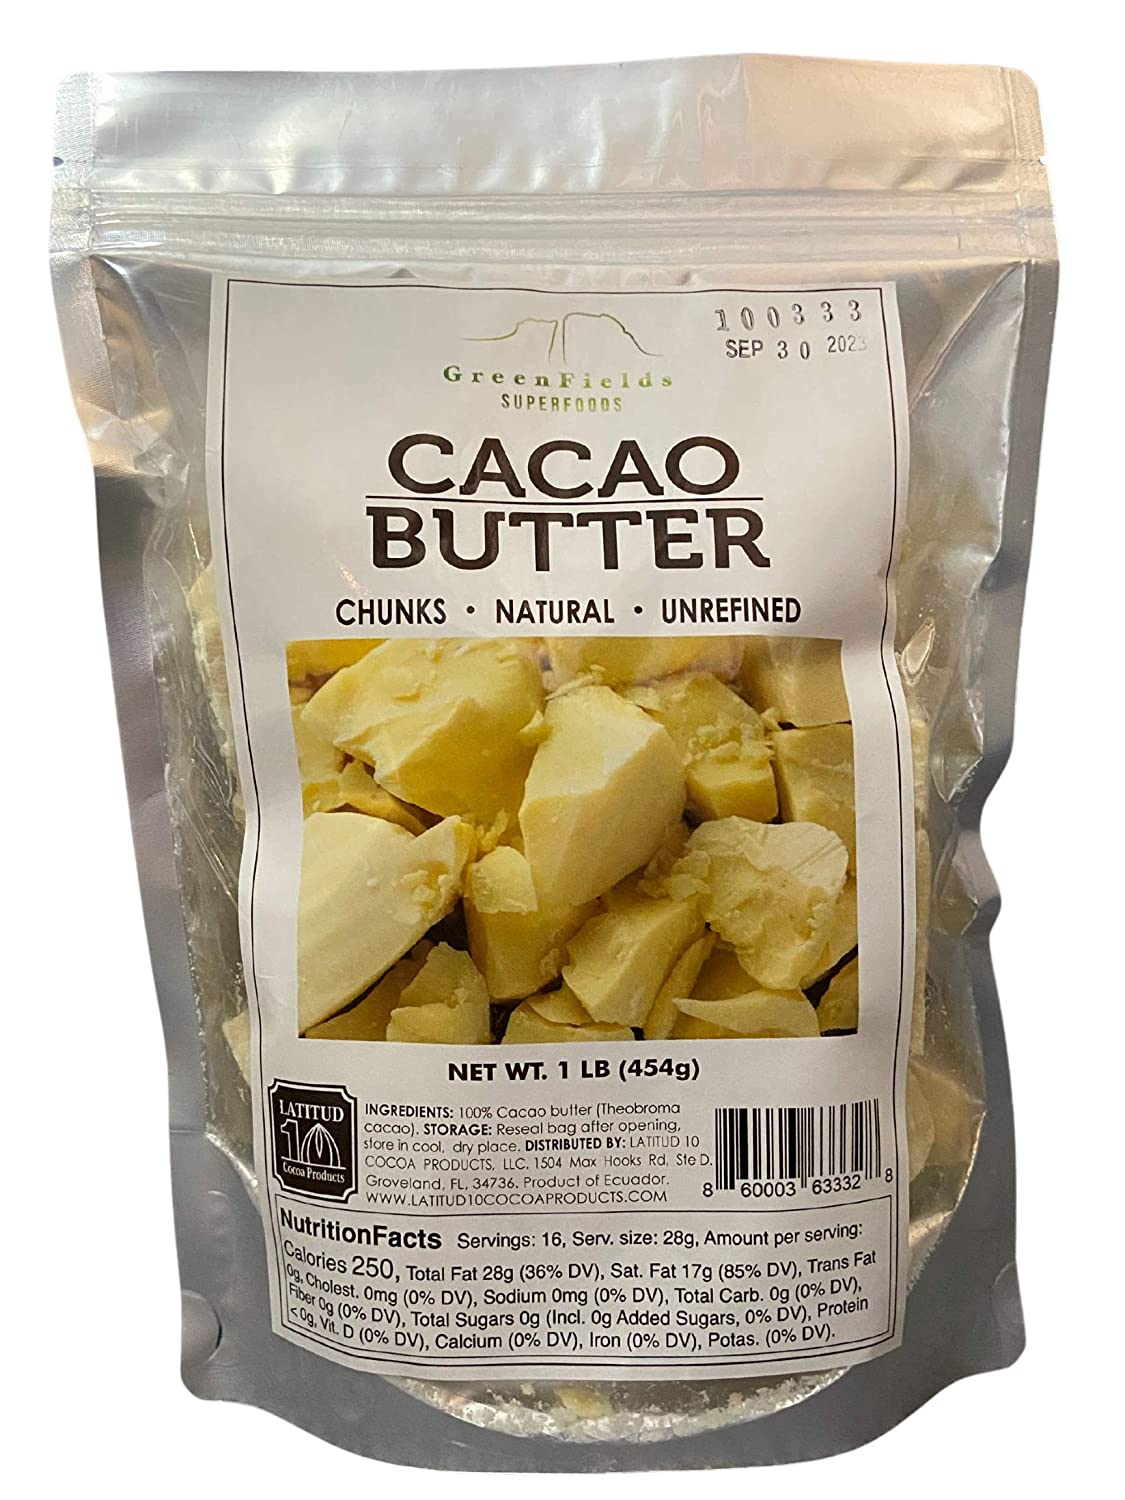 Greenfields Superfoods Organic Cacao Butter 1Lb, Natural, Unrefined